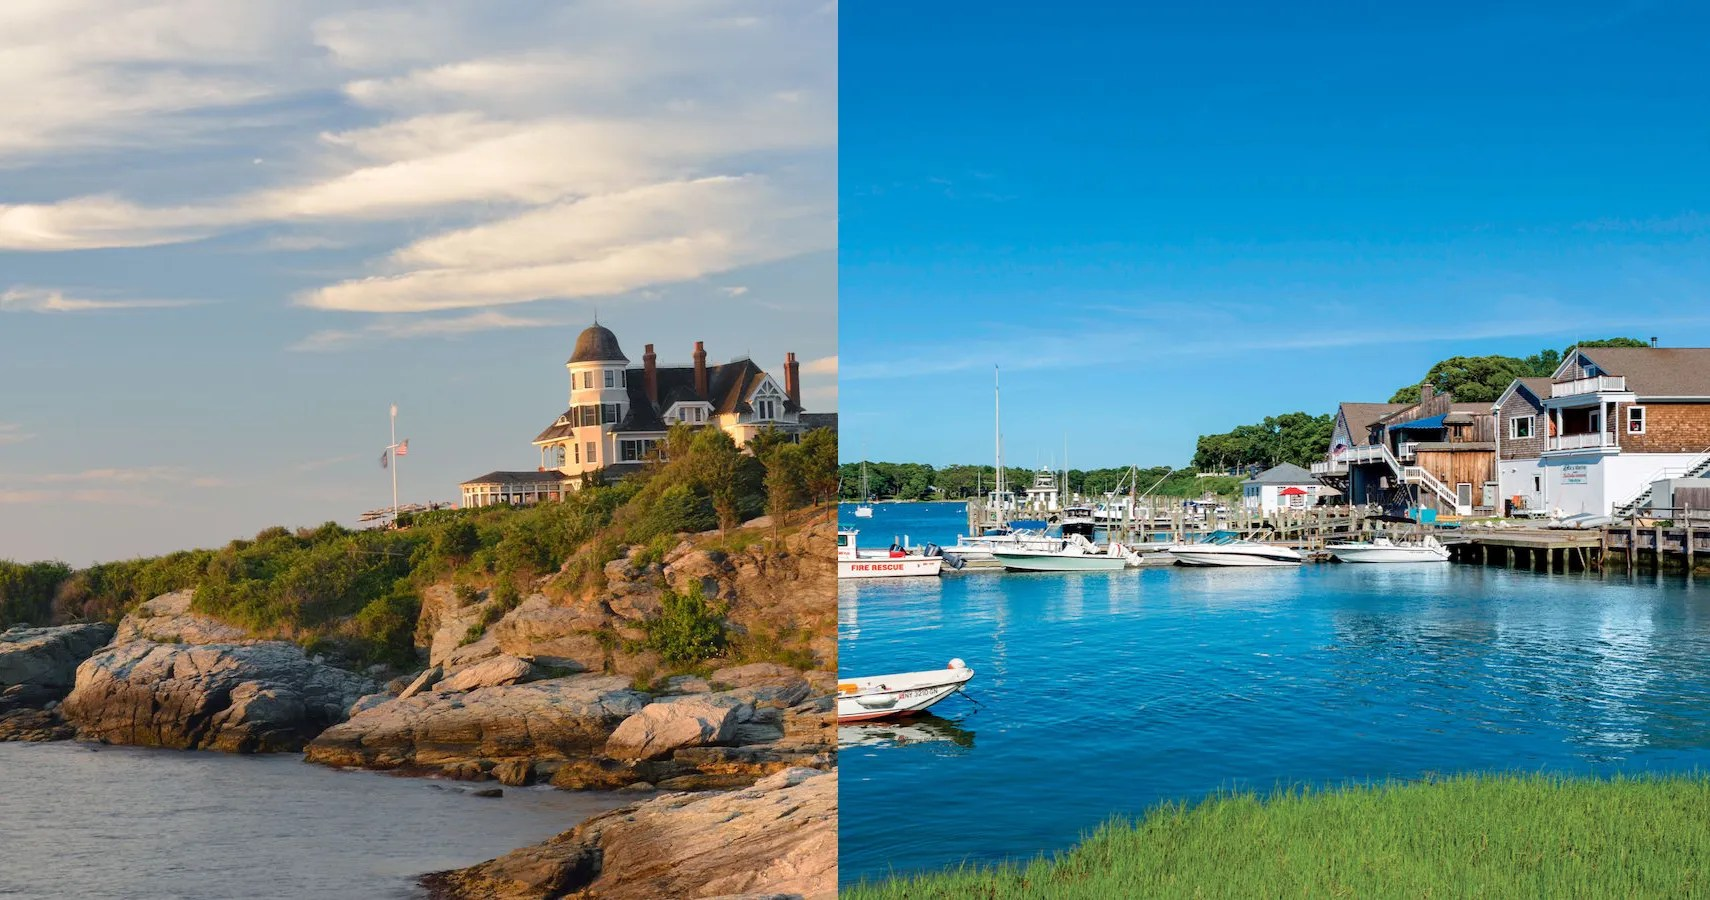 The 10 Best East Coast Resort Towns In America (& What To See First When You Get There)